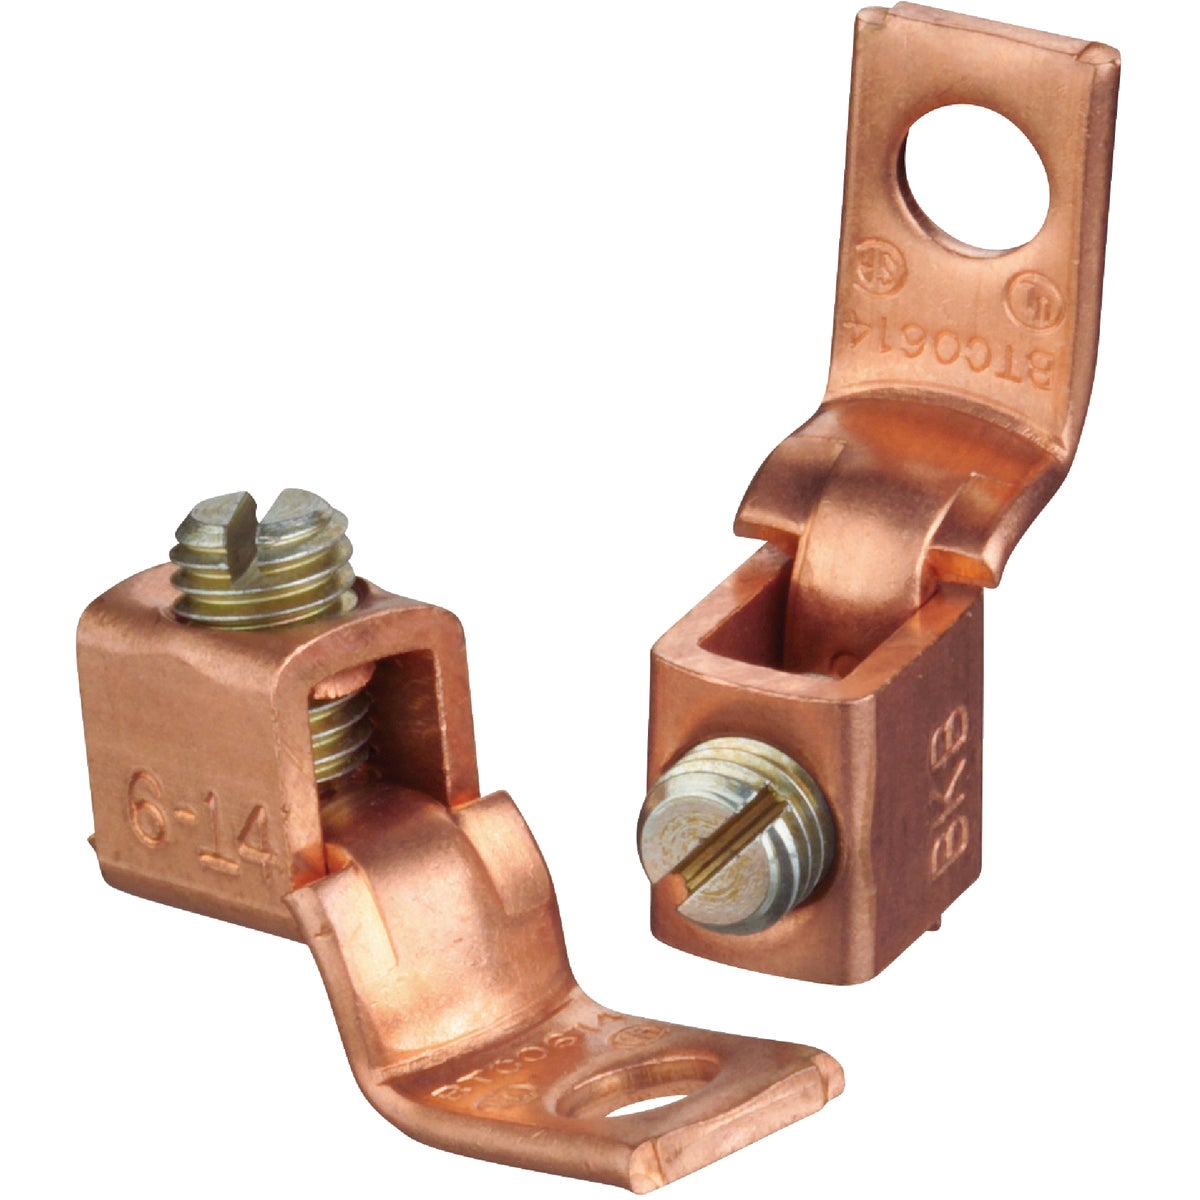 1/0STR-2STR AWG TERM LUG - BTC1102 by Thomas & Betts